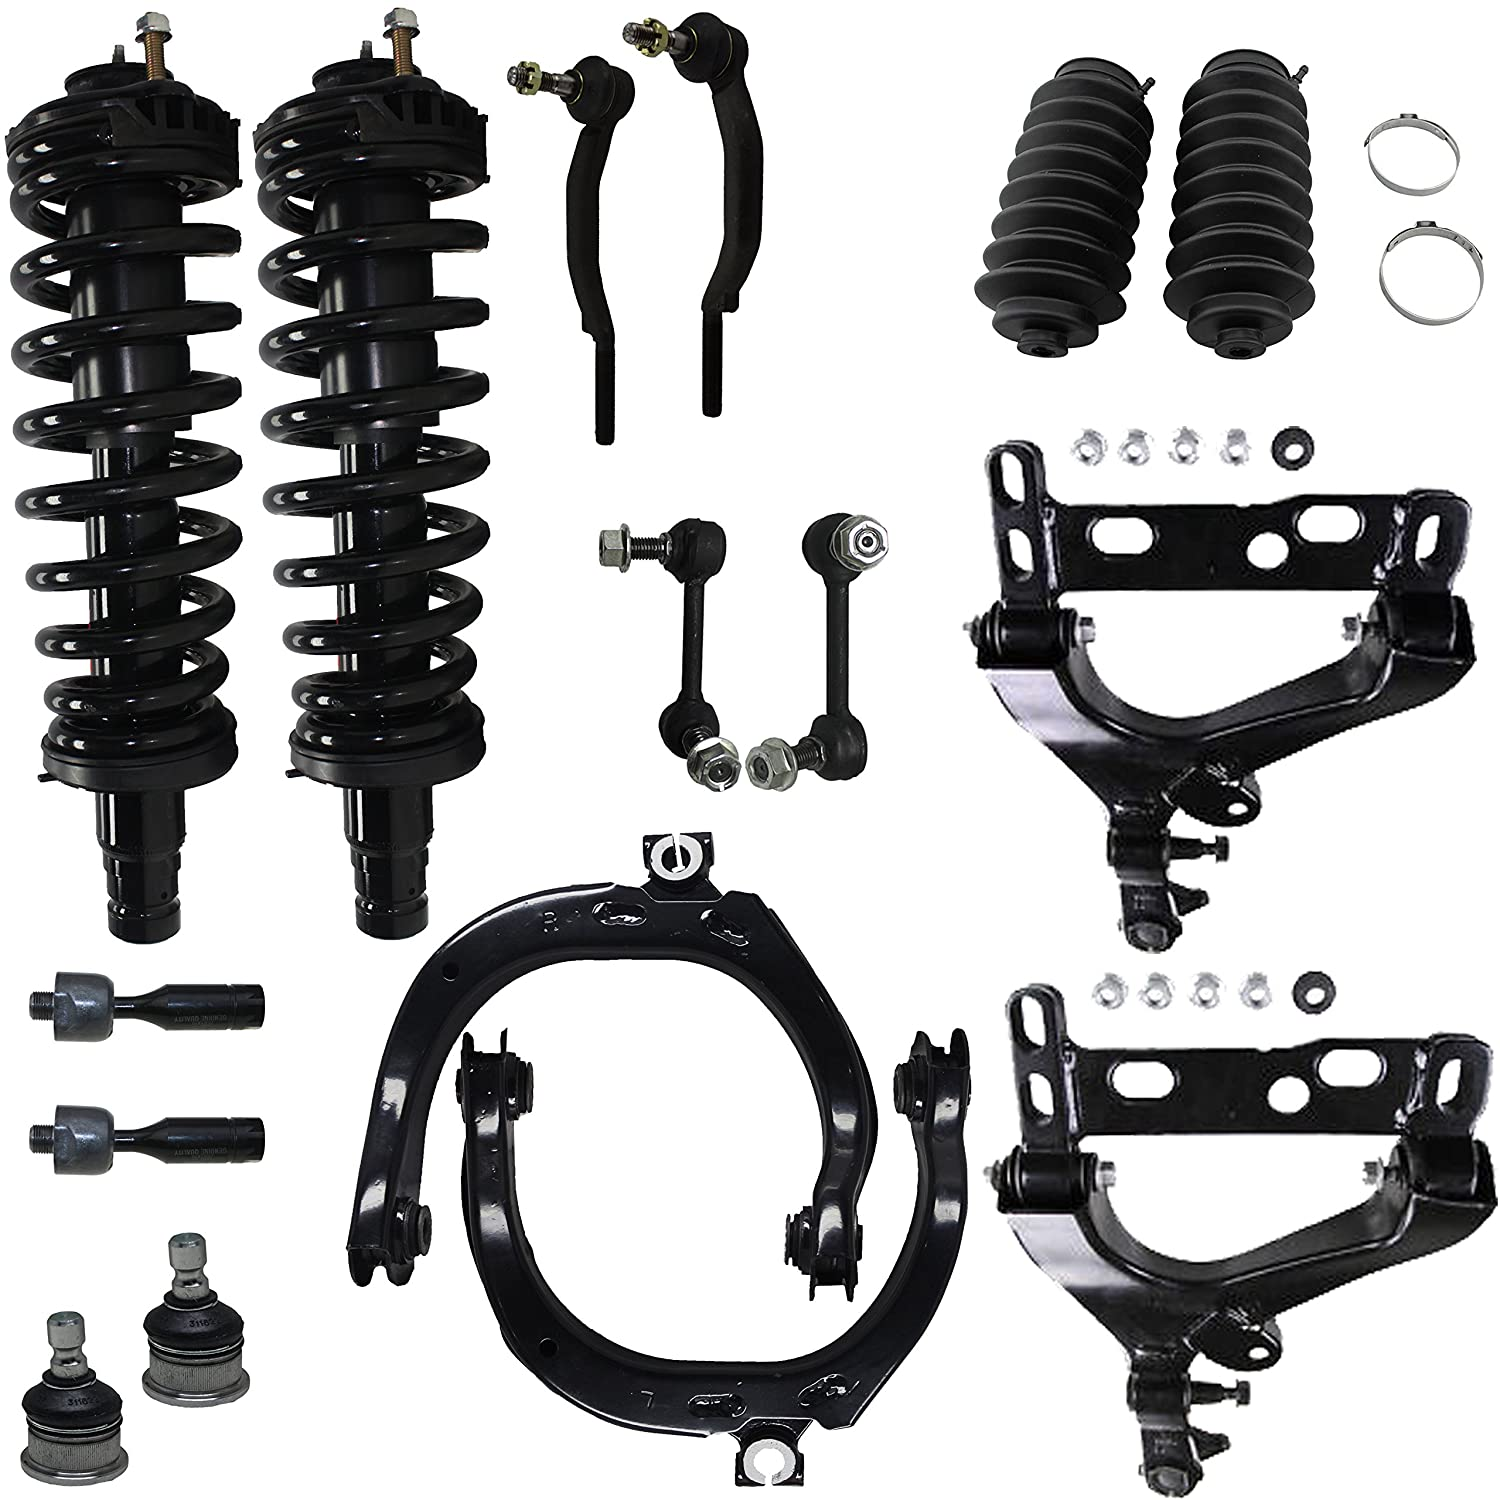 Front Rear Struts and Springs Shock Kit for 2000 2001 2002 2003 2004 2005 Hyundai Sonata Detroit Axle